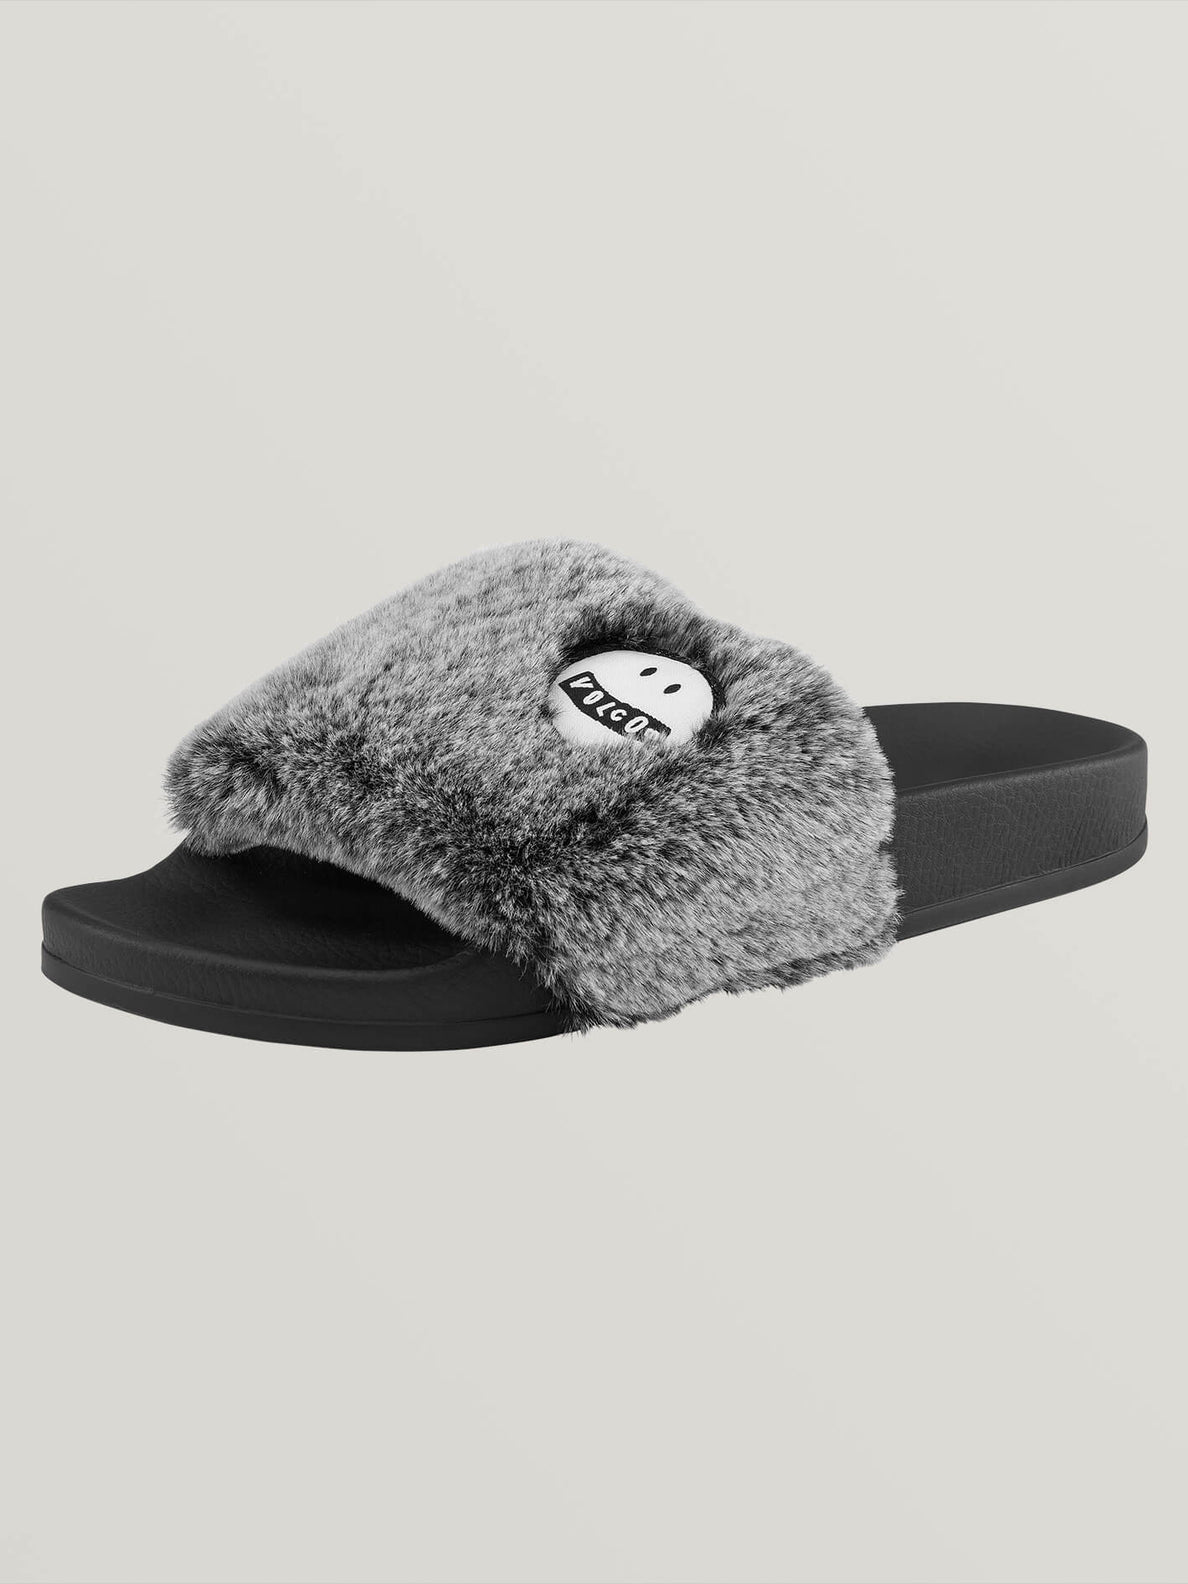 Lived In Lounge Slides In Heather Grey, Back View